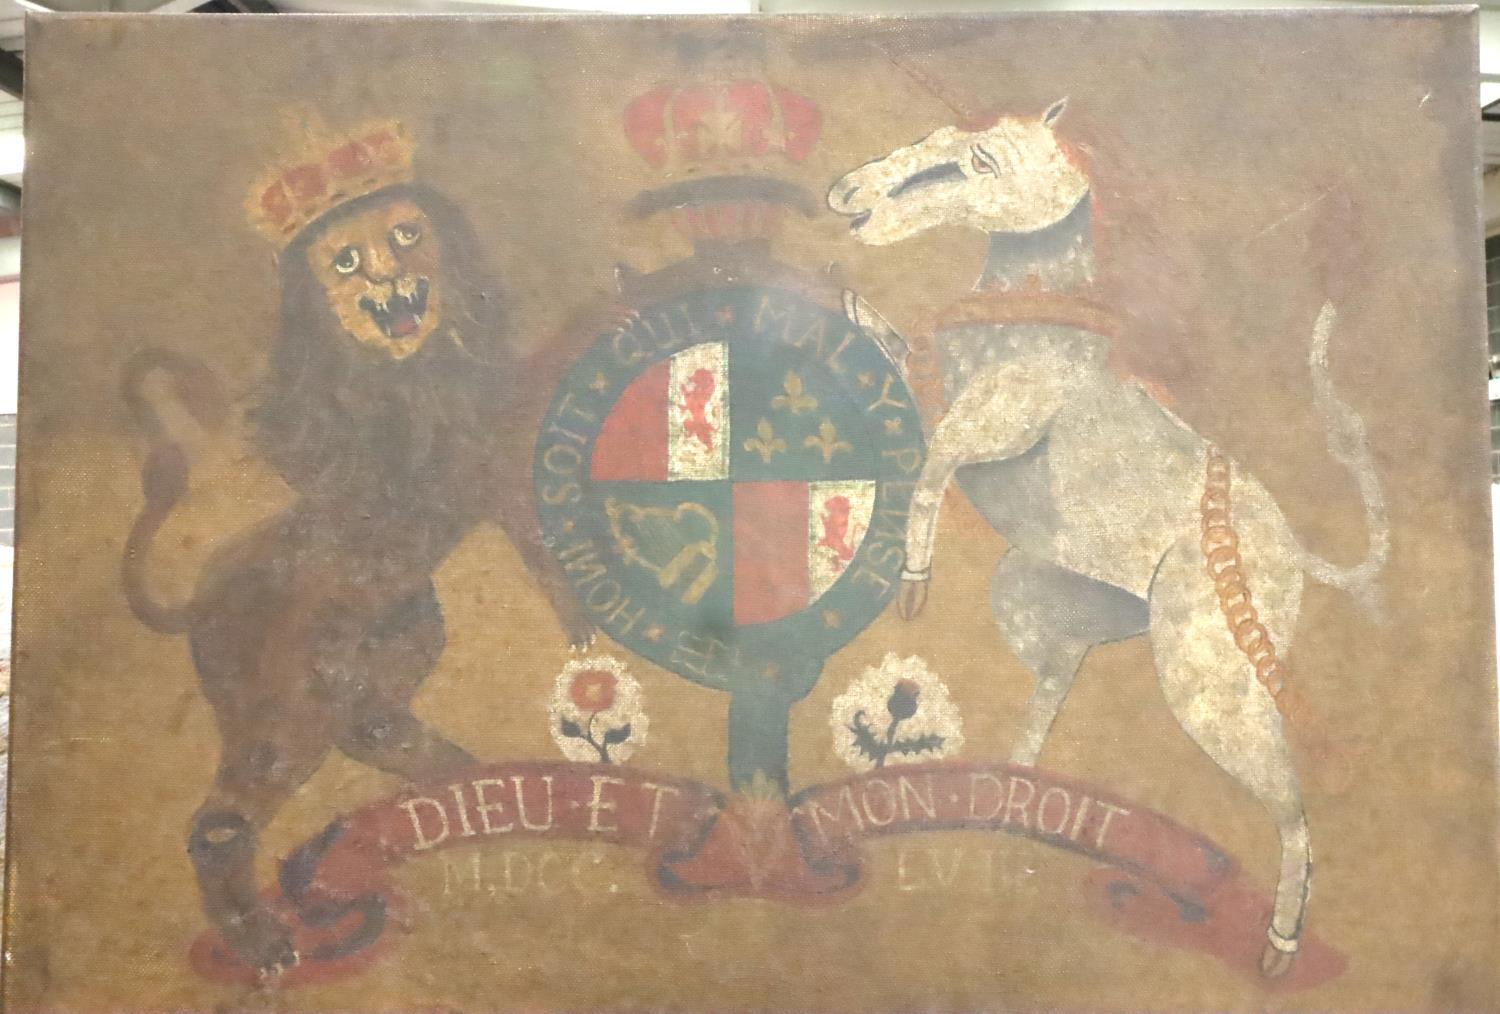 Oil on canvas depicting George IV Coat of Arms. P&P Group 2 (£18+VAT for the first lot and £3+VAT